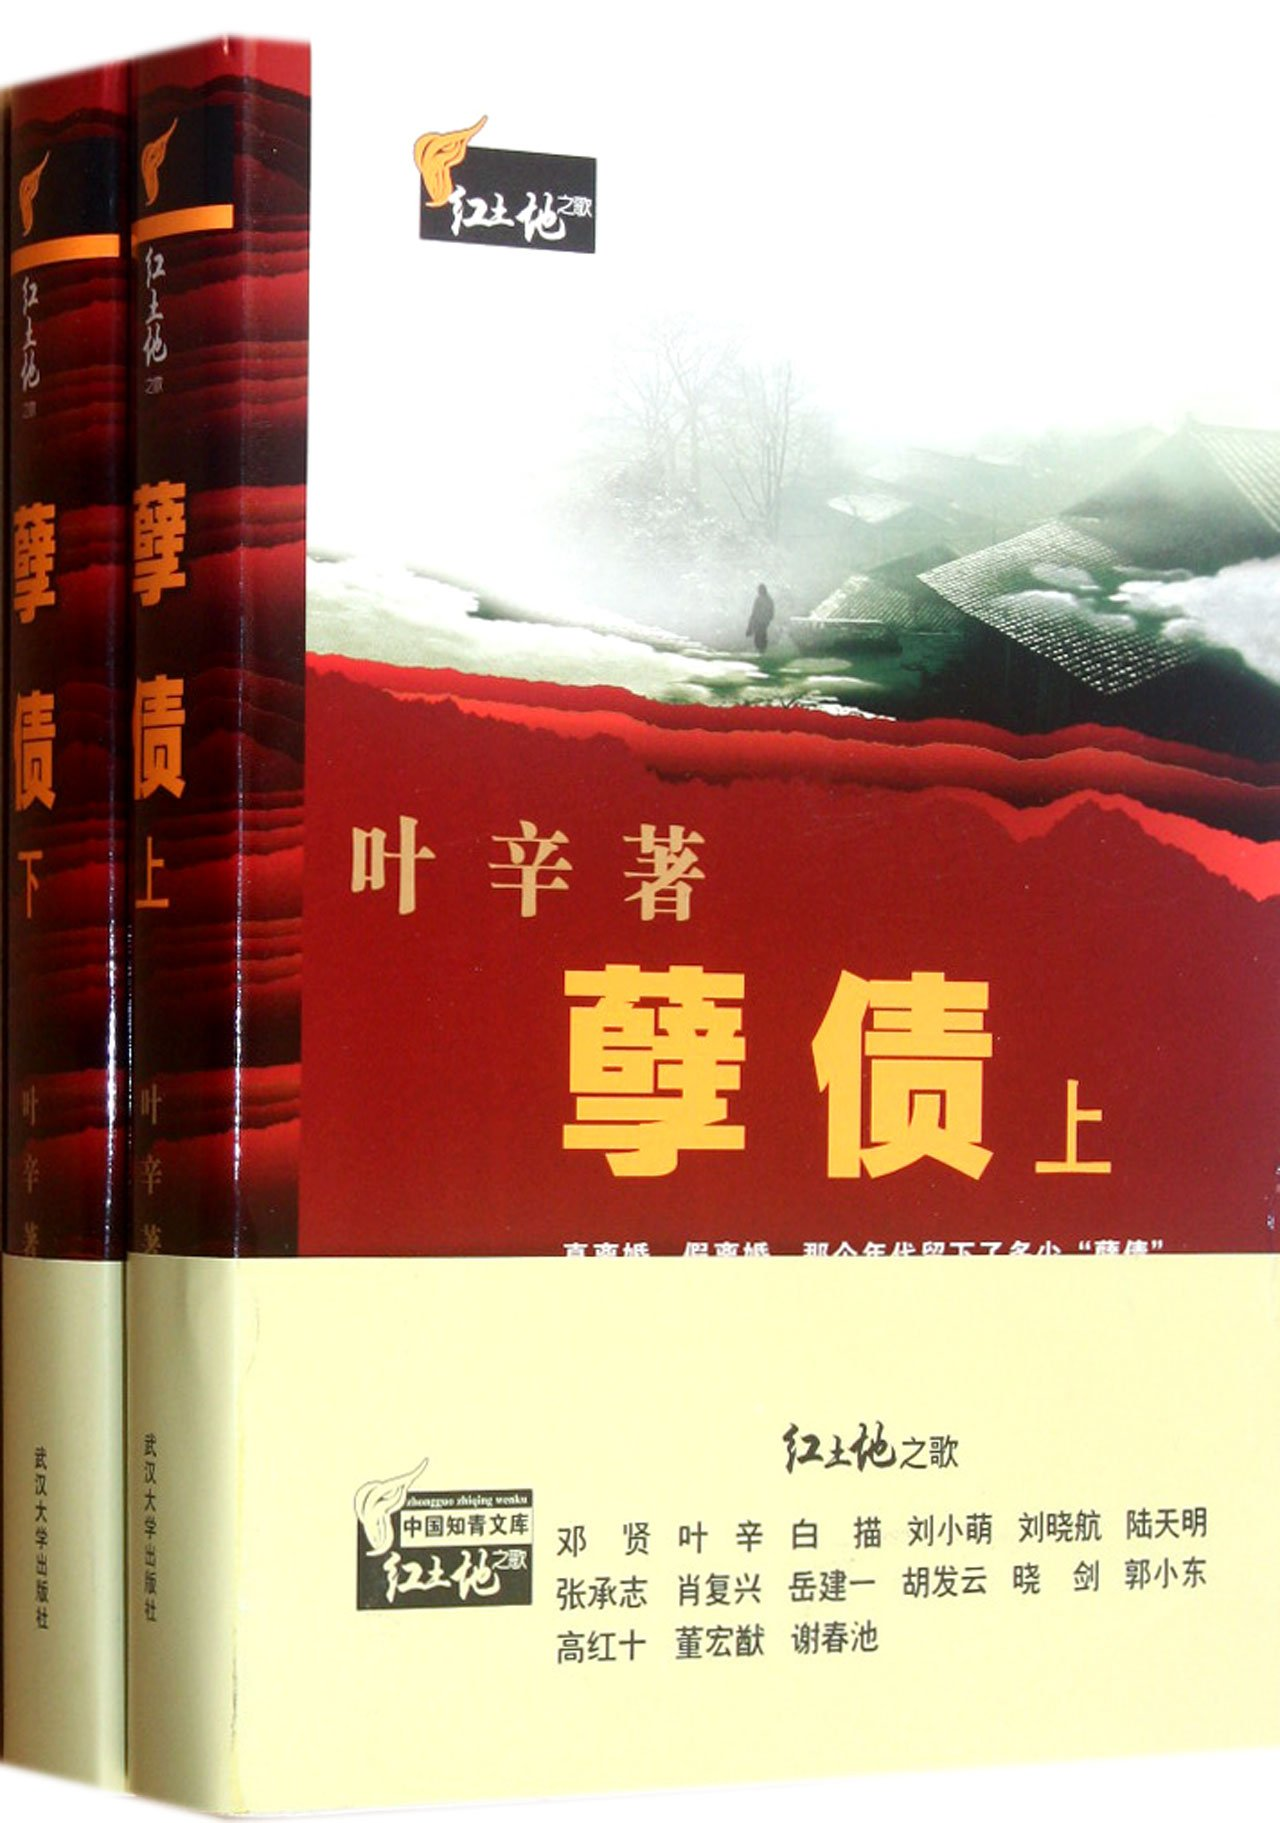 Download Sinful Debt-Songs of Red Soil-2 Volumes (Chinese Edition) ebook